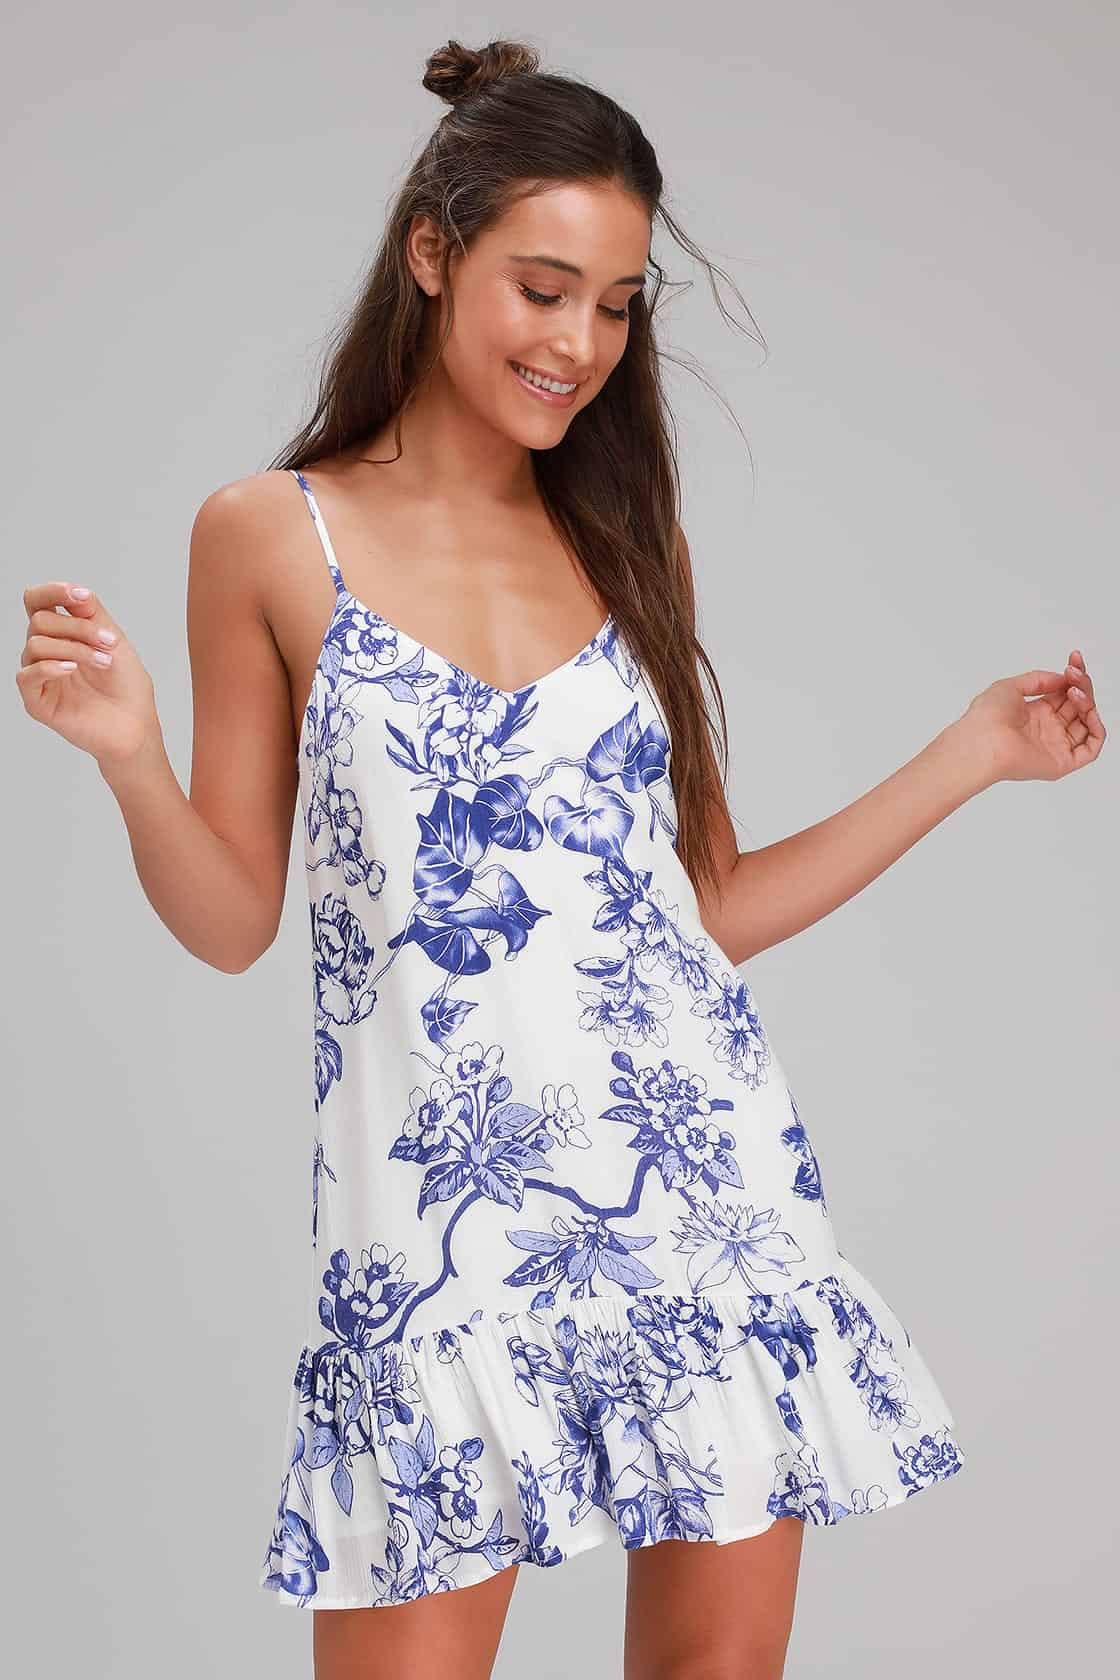 Summer Honeymoon Outfits for Her Blue And White Floral Print Ruffled Shift Dress 2